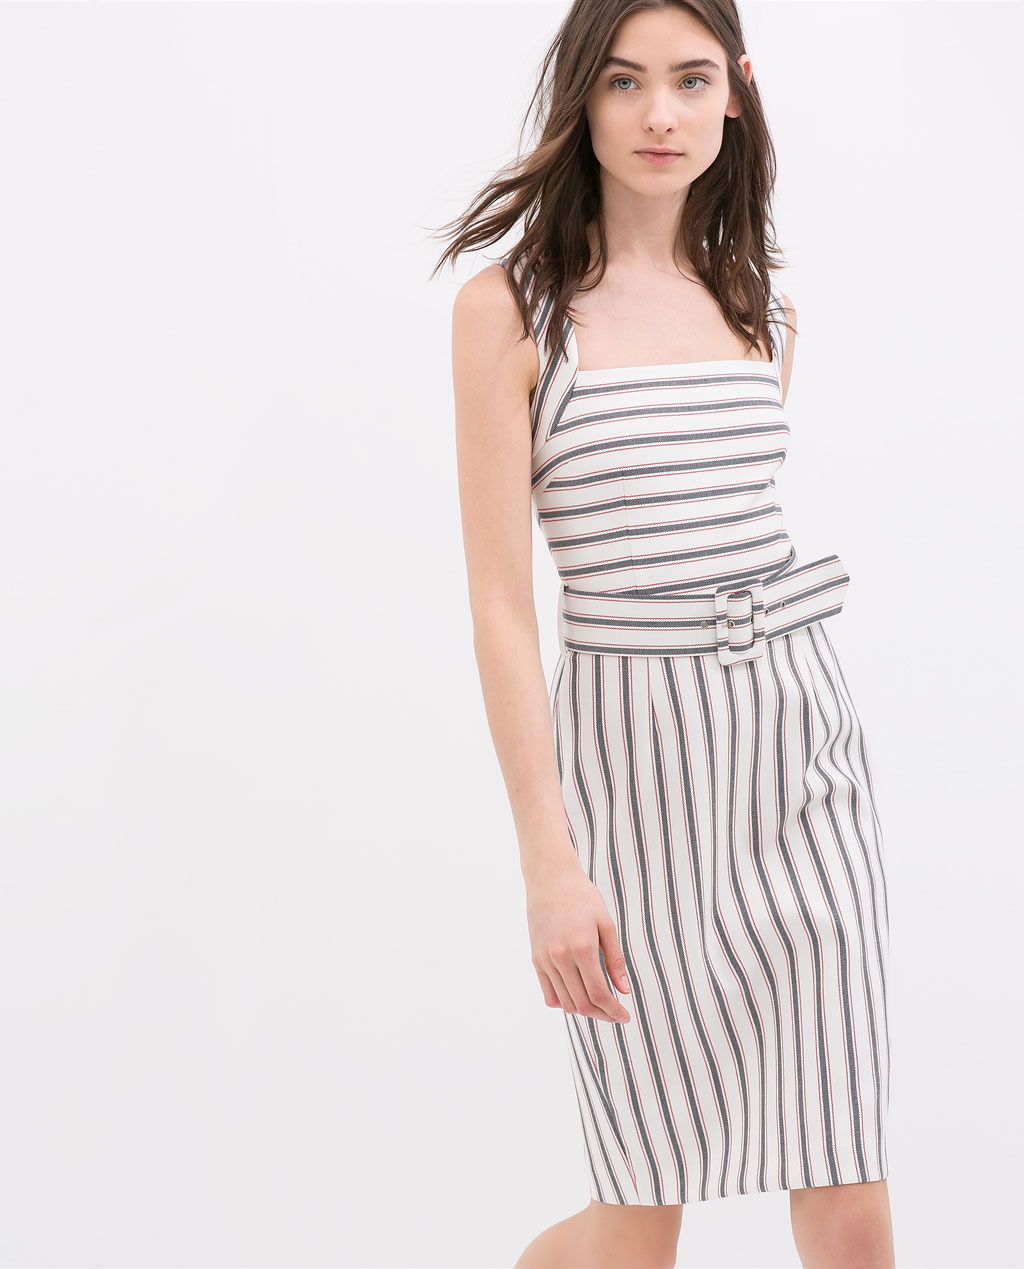 Striped Dress With Wide Straps - sleeve style: standard vest straps/shoulder straps; fit: tailored/fitted; pattern: horizontal stripes; style: sundress; waist detail: belted waist/tie at waist/drawstring; predominant colour: white; secondary colour: pale blue; occasions: casual, creative work; length: just above the knee; fibres: polyester/polyamide - stretch; sleeve length: sleeveless; neckline: low square neck; pattern type: fabric; pattern size: standard; texture group: other - light to midweight; season: s/s 2014